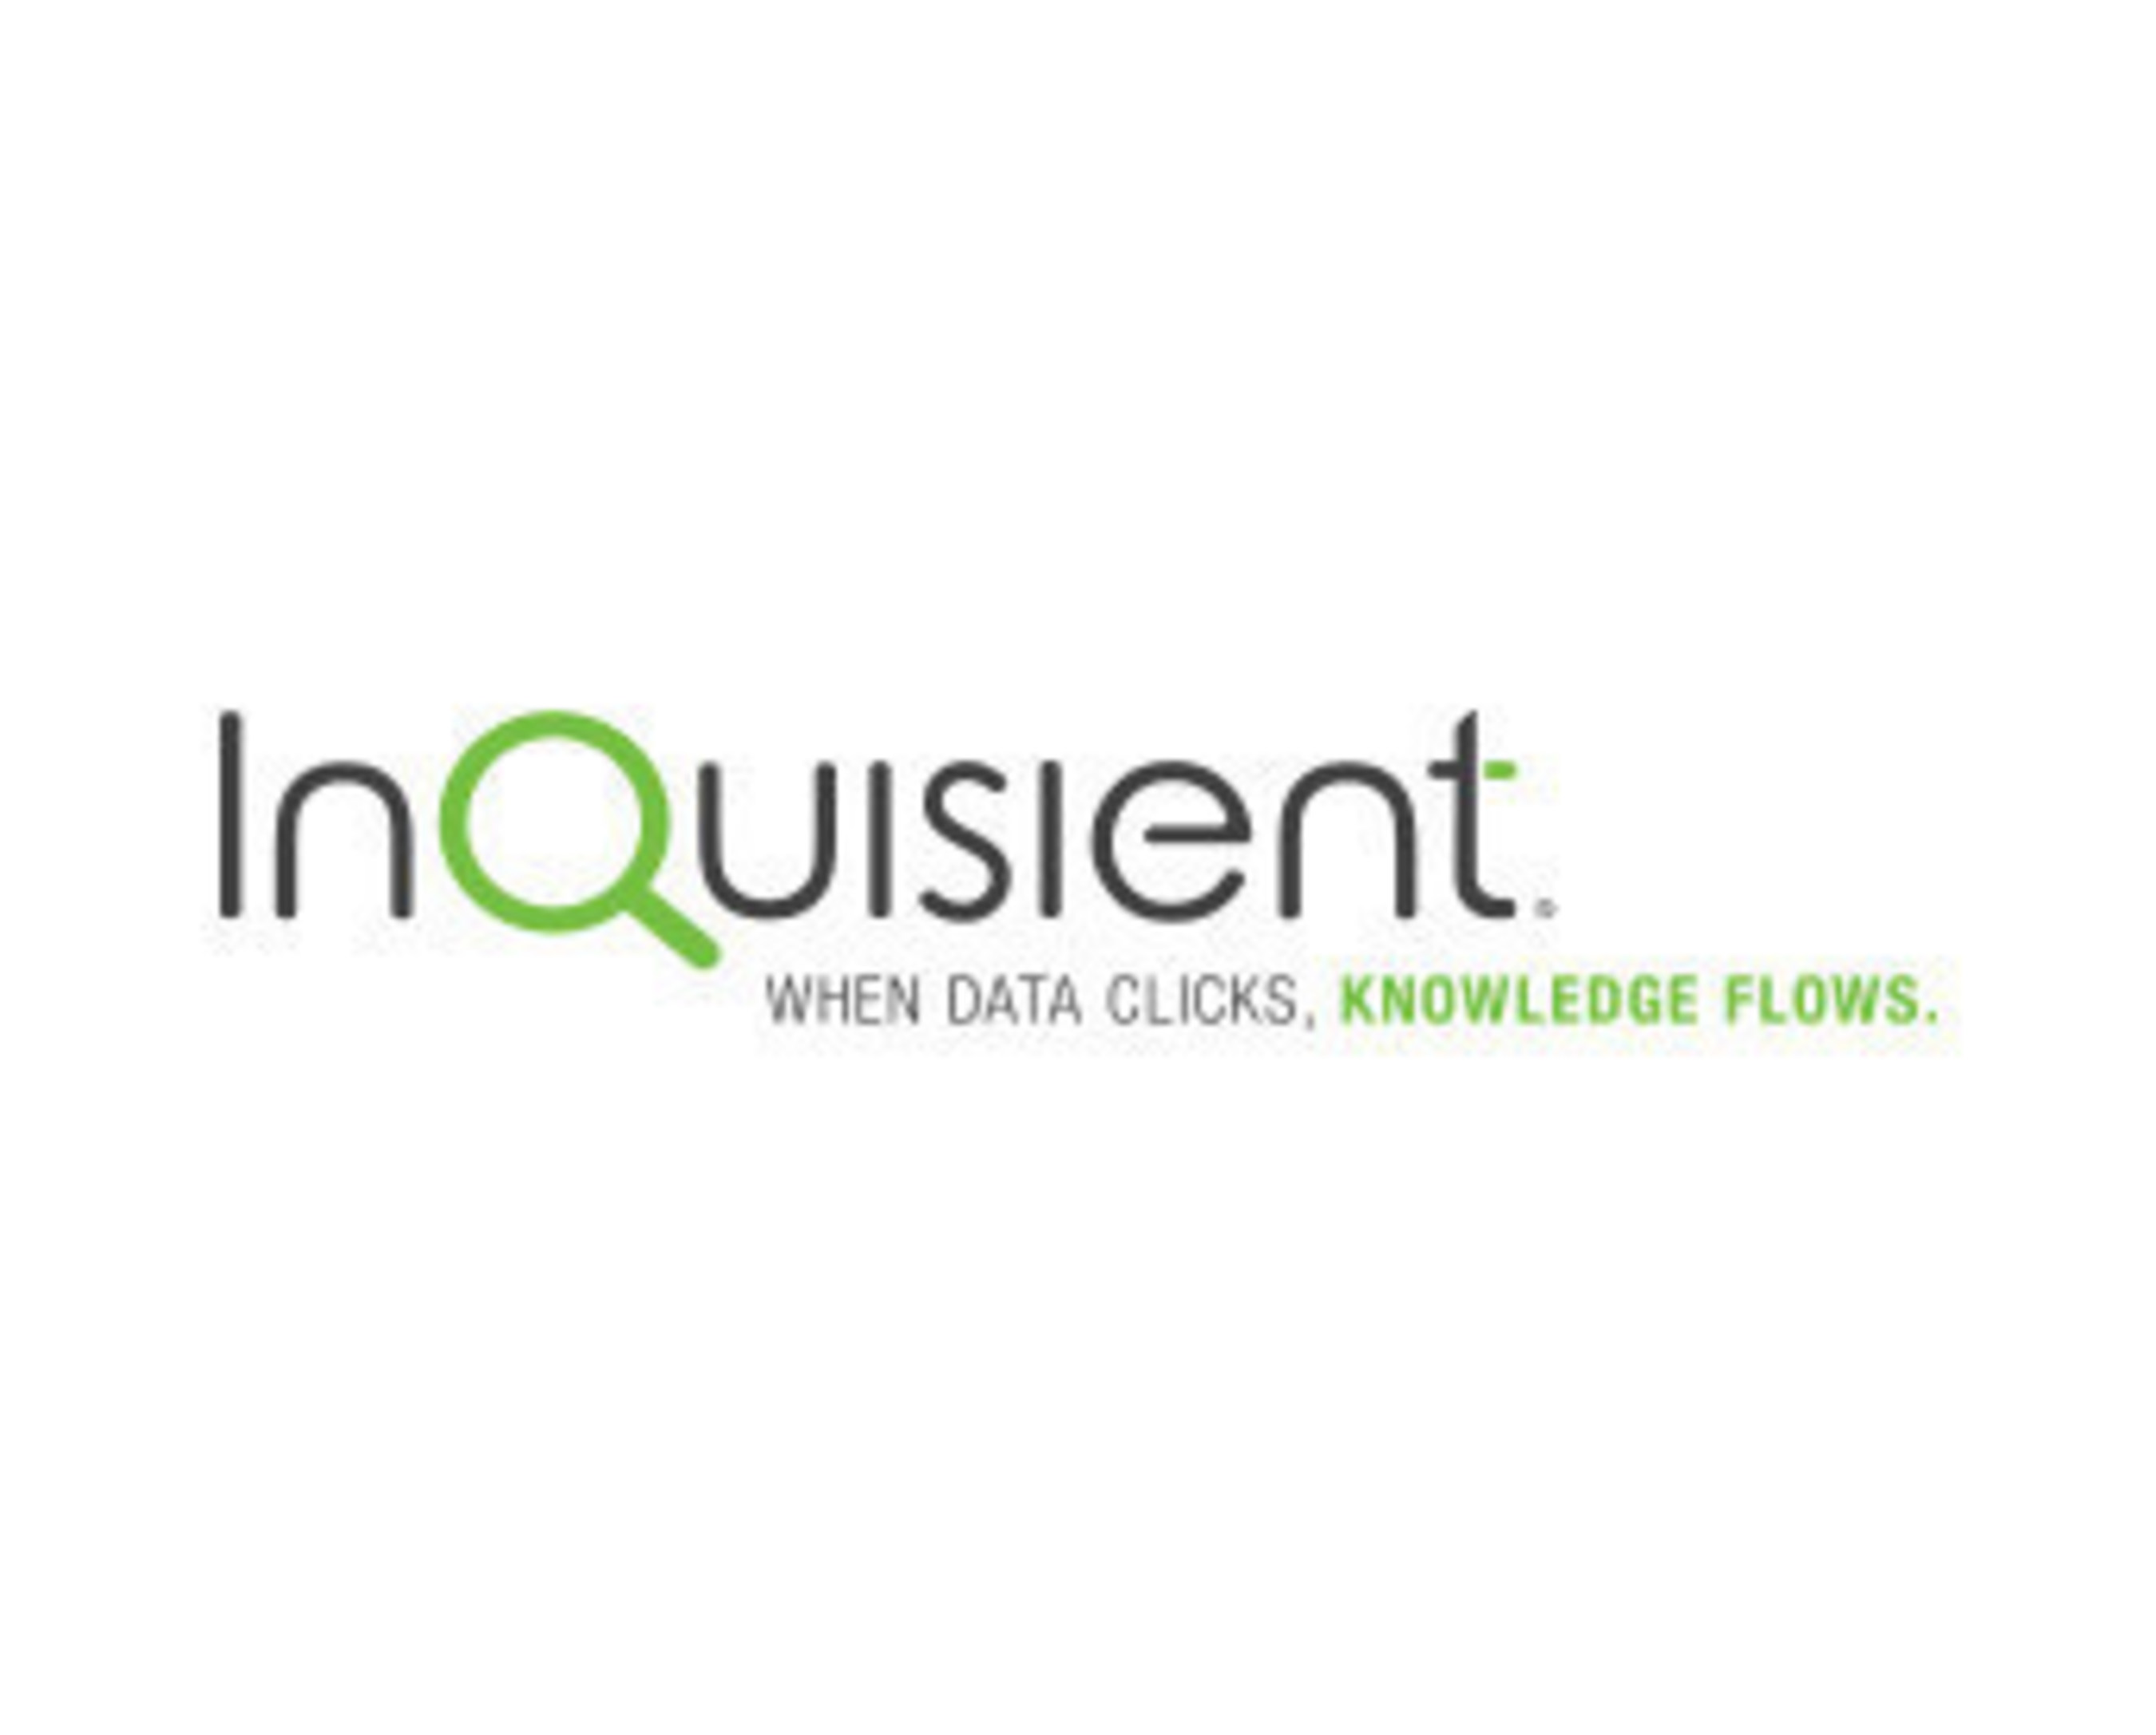 InQuisient Launches New Enterprise Data Management Platform & Tools at GEOINT 2015